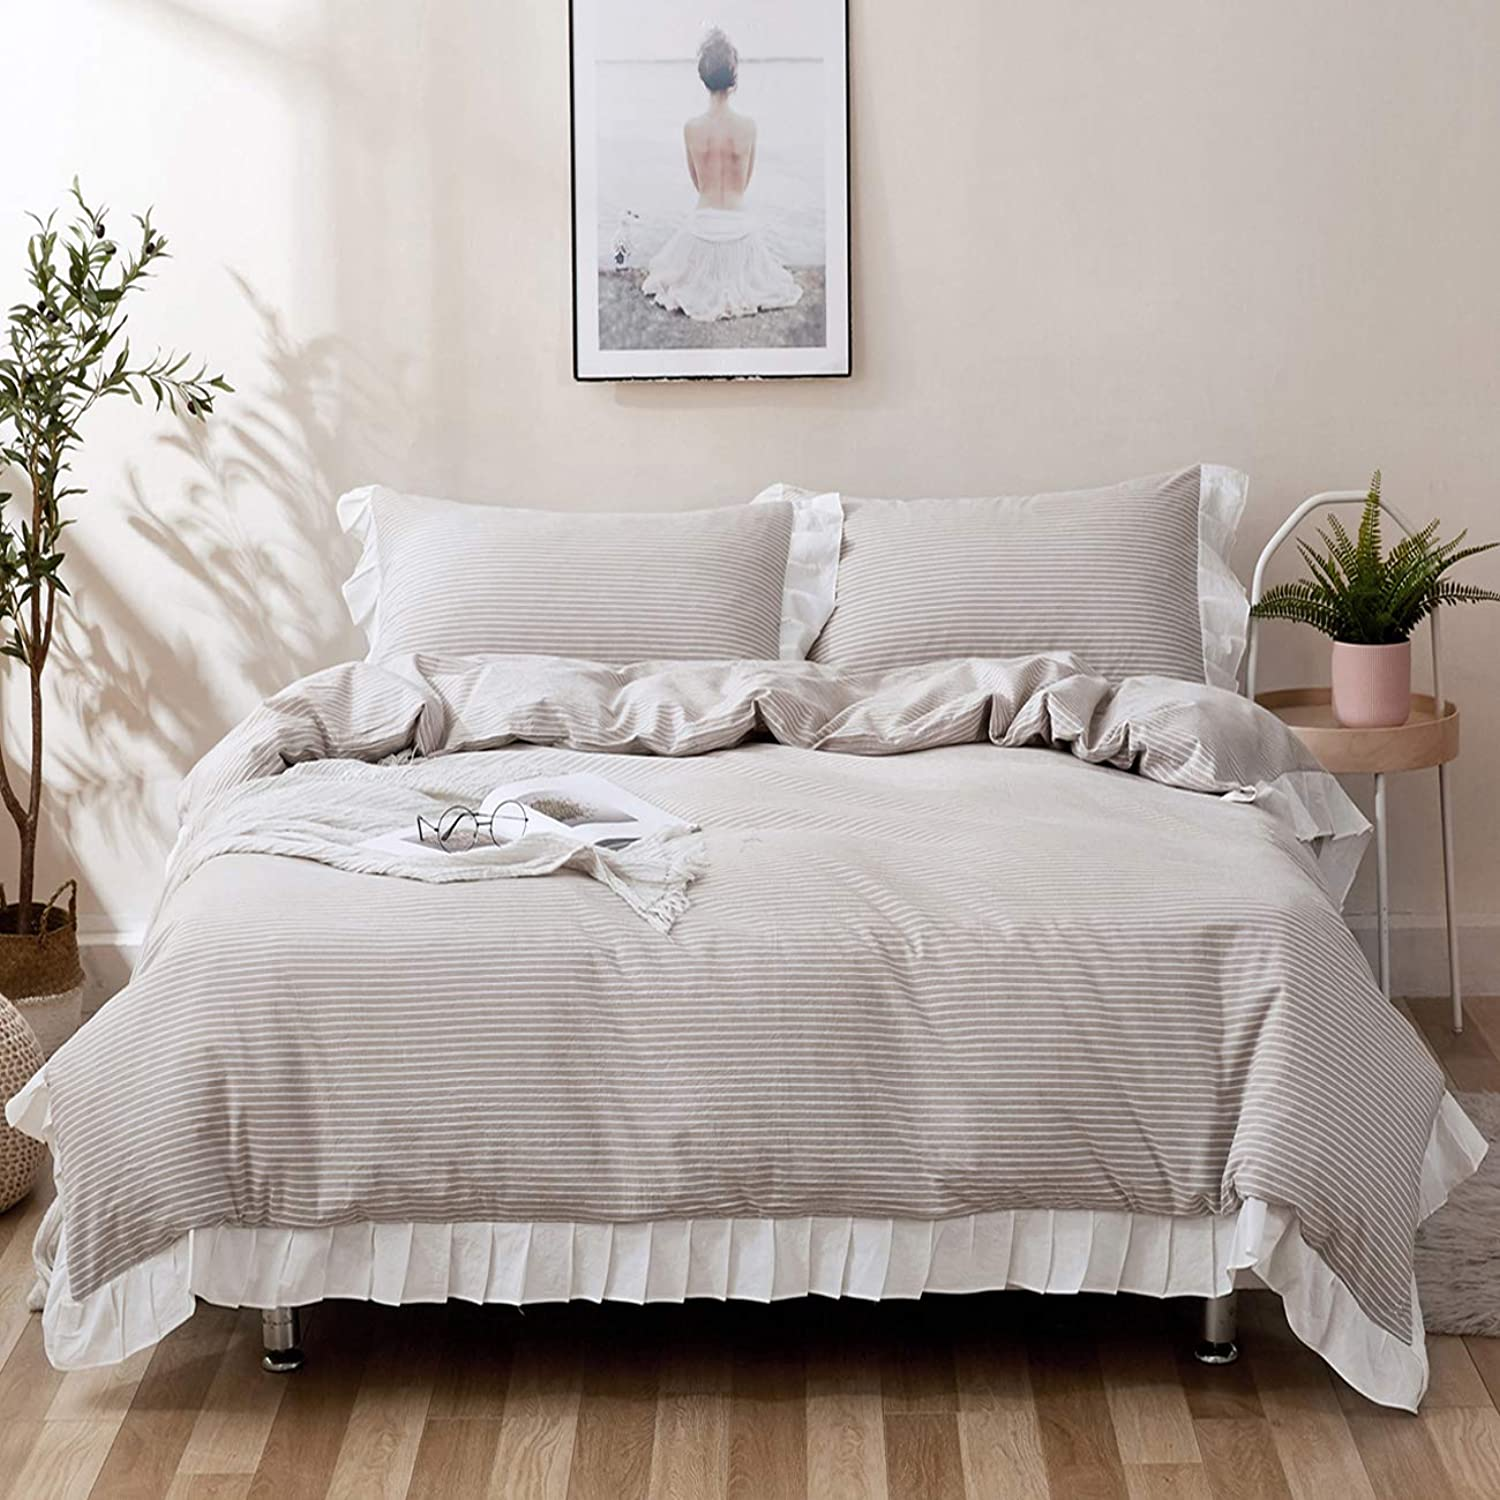 ZYEN Ruffles Duvet Cover Queen Set Ruffles Soft 100% Washed Cotton Stripes Frilled Duvet Cover Set Wrinkle Look Duvet Cover with Zipper Closure (Queen, Beige Stripes)